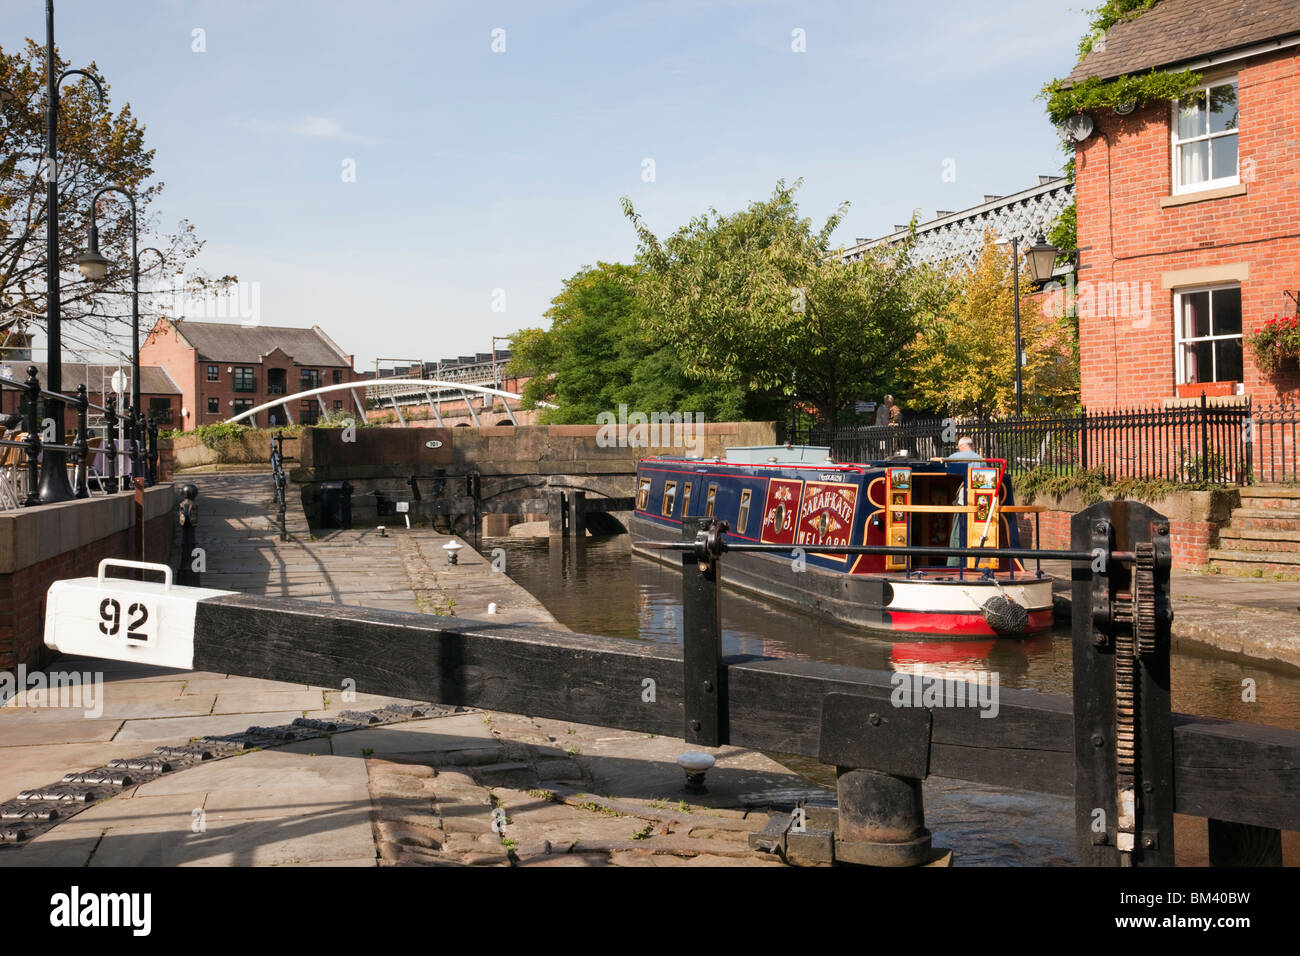 Narrowboat in Dukes Lock 92 on the Rochdale canal in Castlefield Urban Heritage Park. Manchester, England, UK, Britain. - Stock Image